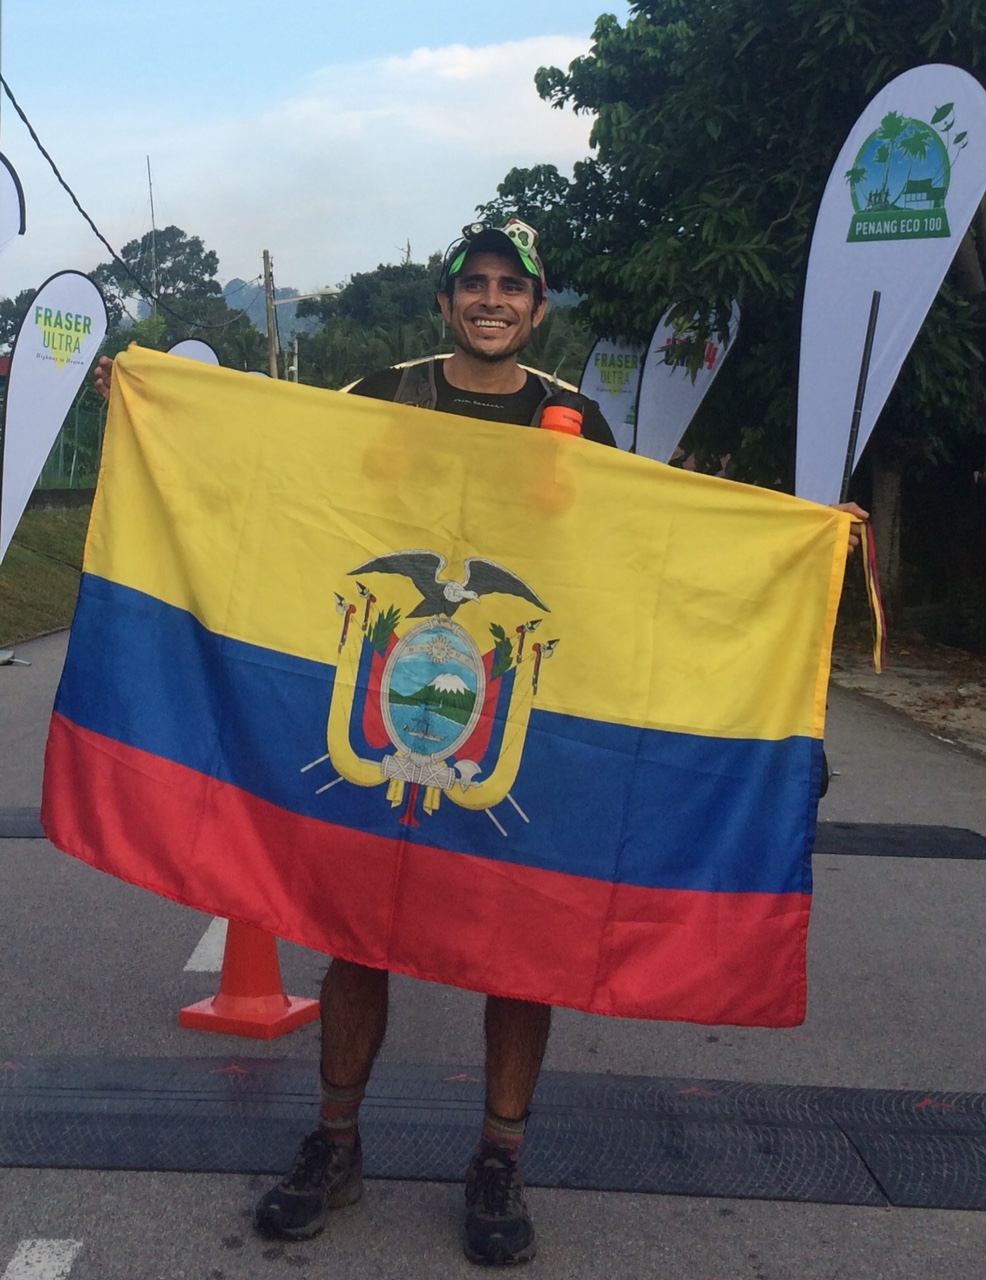 Andres Villagran passed Yuen Wan Ho in the final stages to win the men's 100 miles